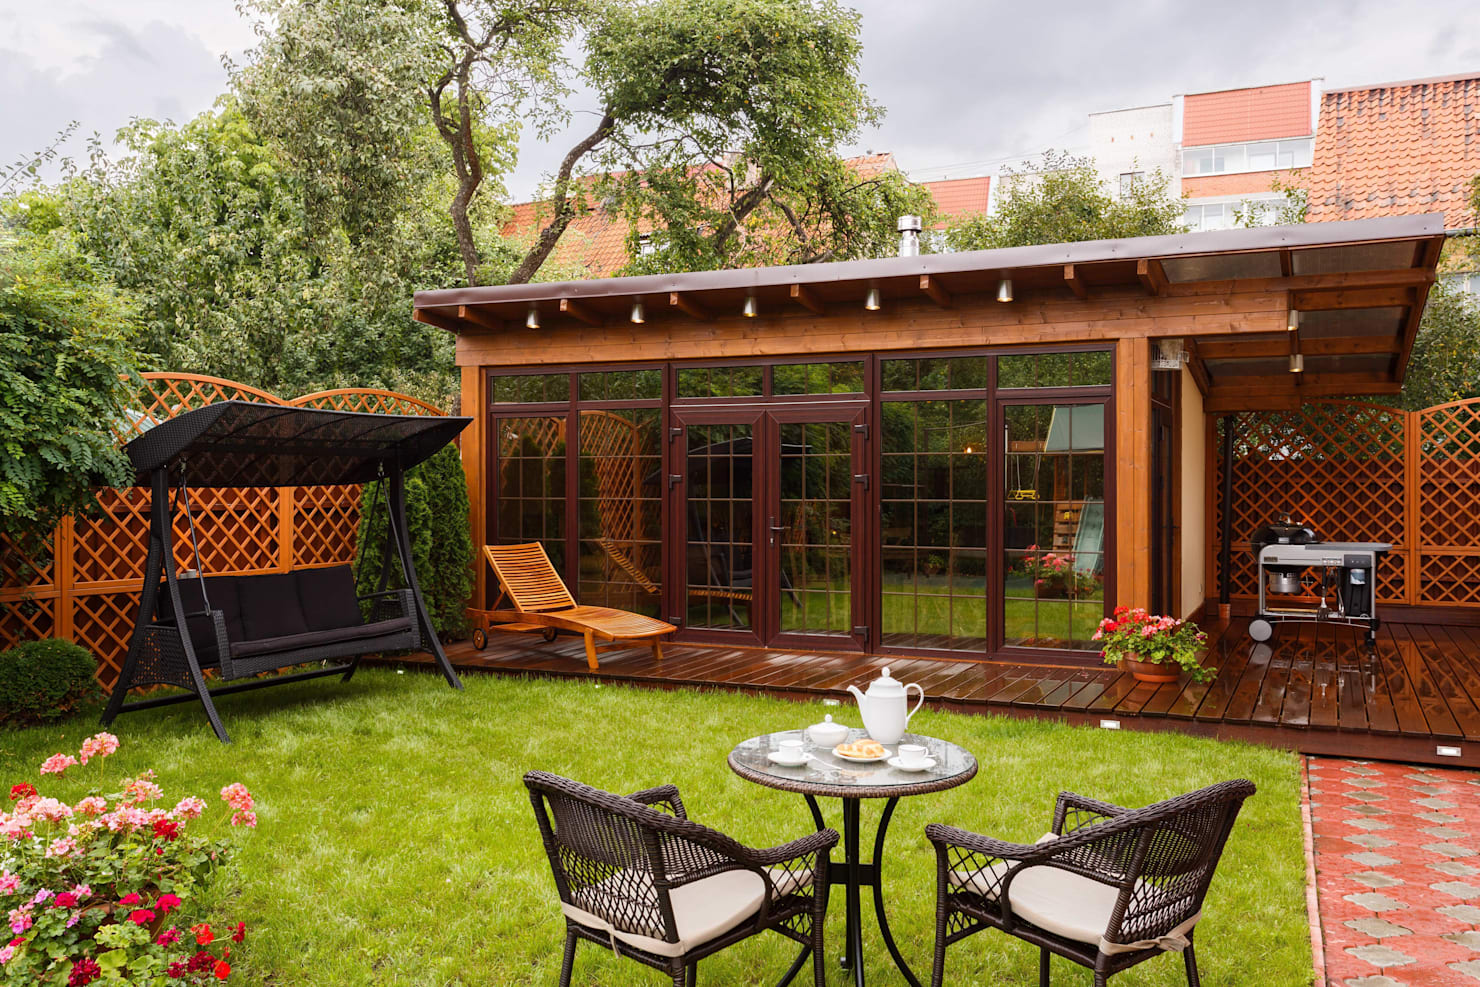 16 garden rooms your neighbours would want to copy